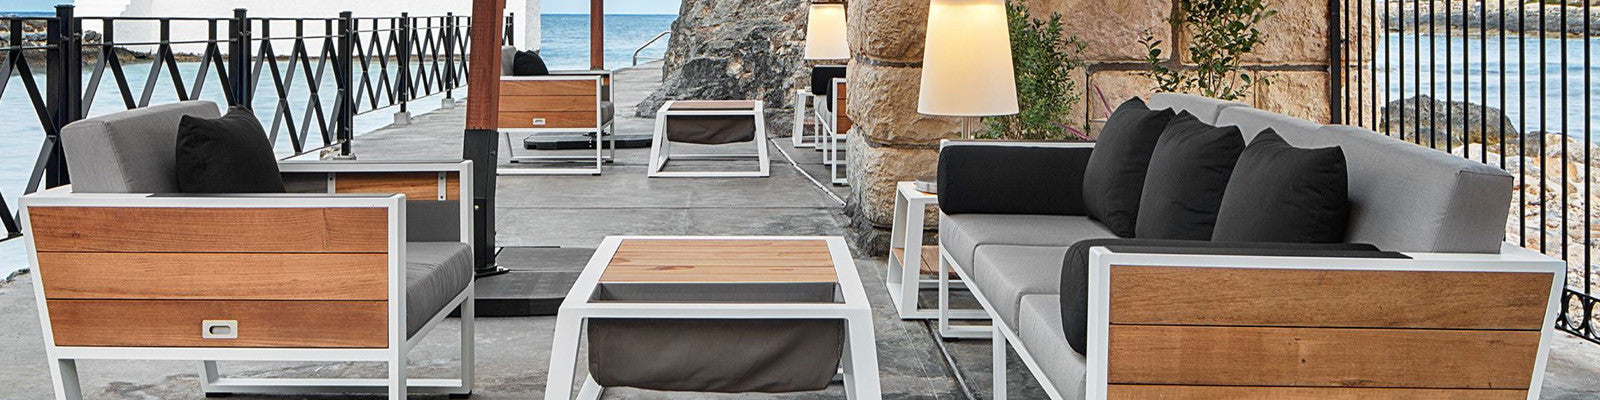 Outdoor Lounge Sets | OROA - Luxury Outdoor Furniture Online